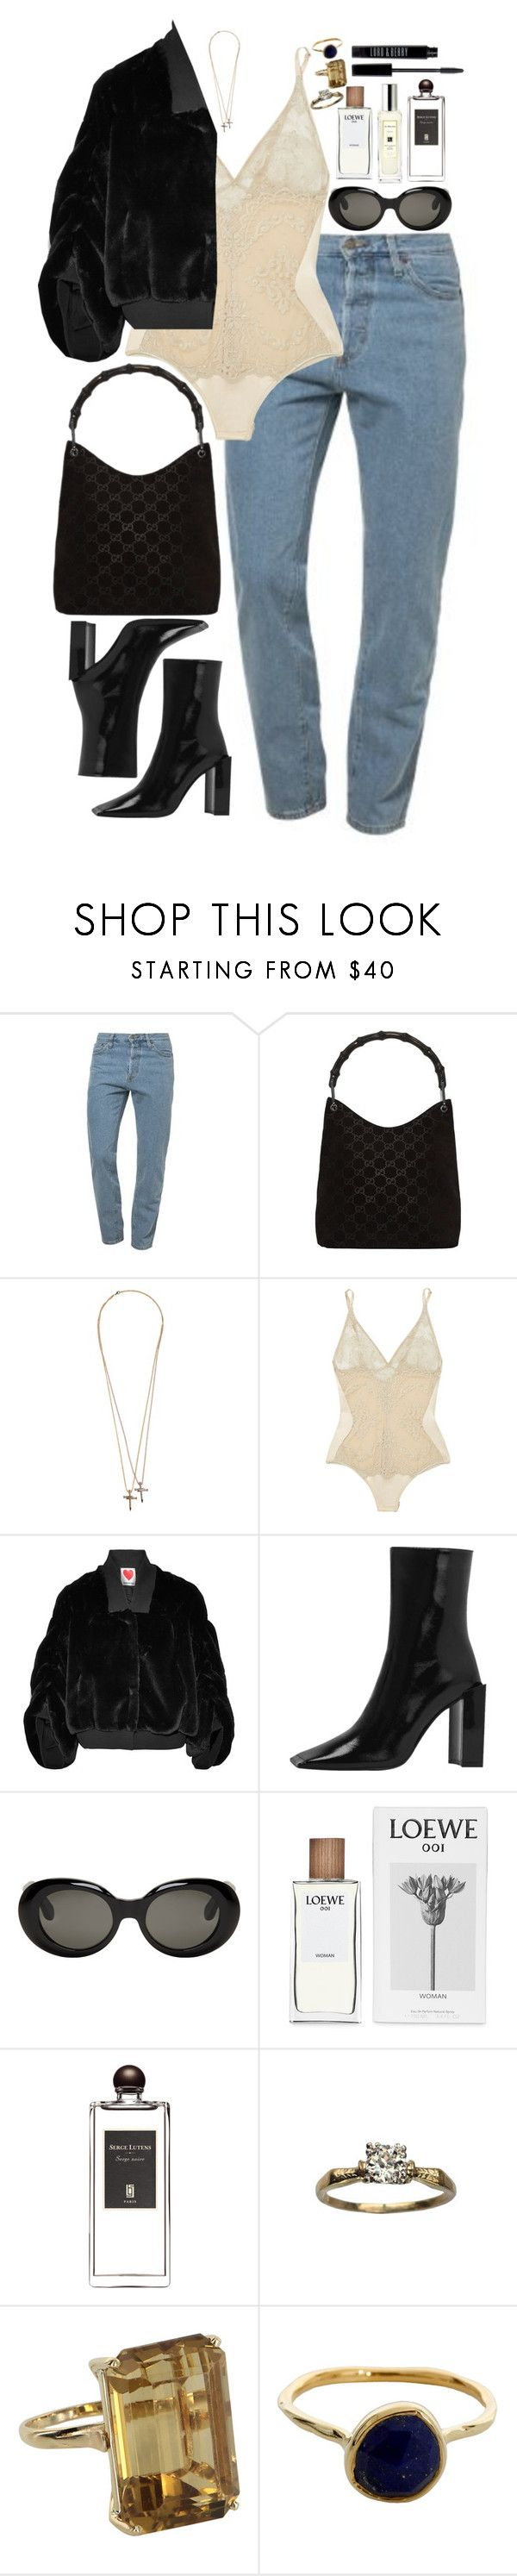 """Untitled #813"" by lindsjayne ❤ liked on Polyvore featuring American Apparel, Gucci, Dsquared2, I.D. SARRIERI, House of Fluff, Acne Studios, Loewe, Serge Lutens, Vintage and Monica Vinader"